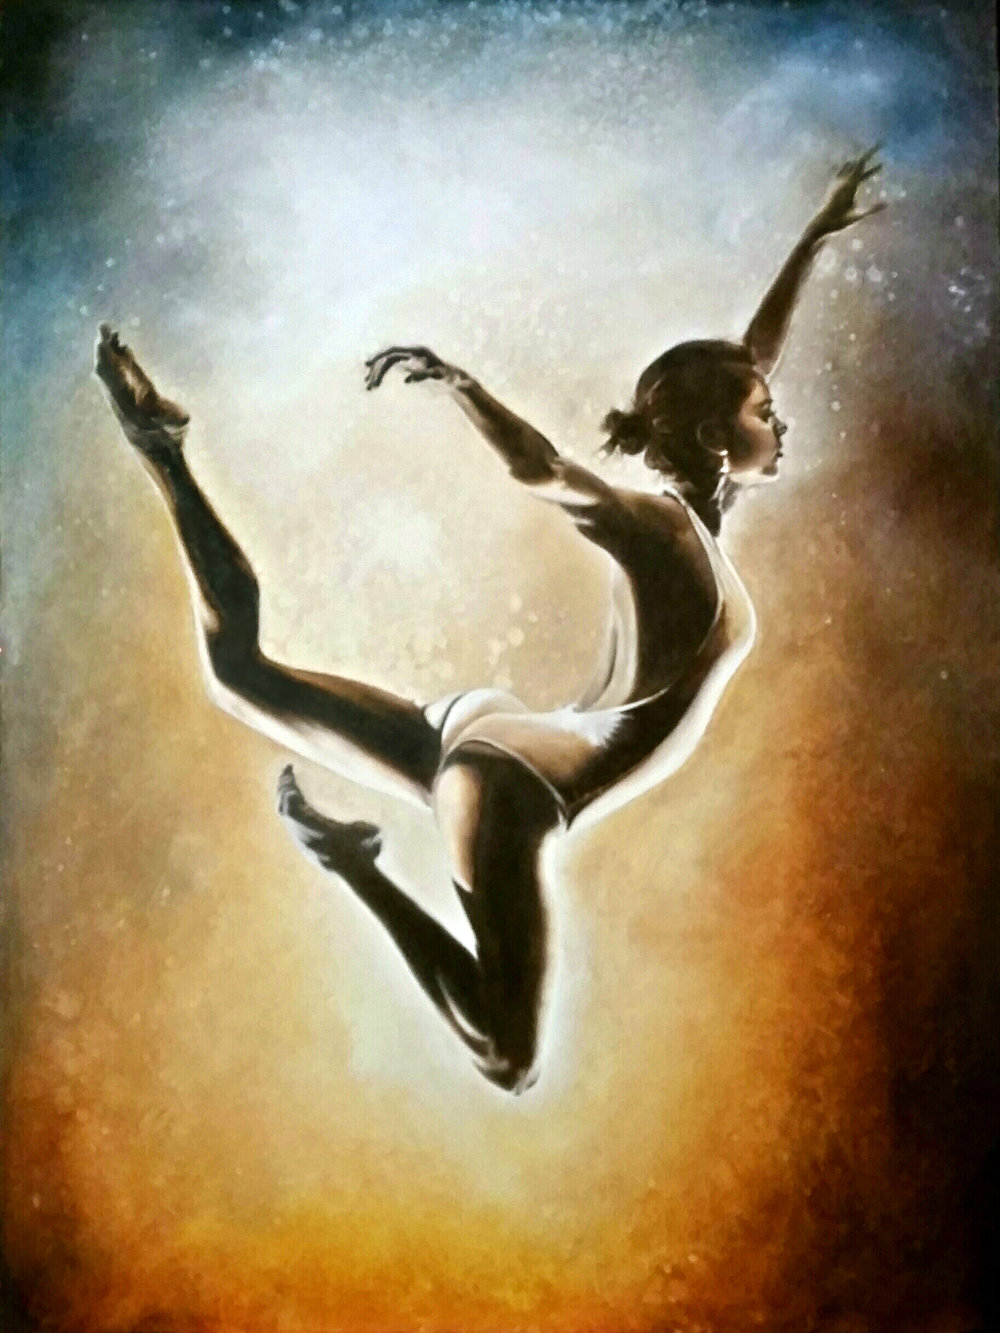 """Just Float"", 2015, Ginger Del Rey  oil on gesso board 24"" x 18"" x 1""  Sold  I imagine this lovely dancer as free-floating through a cosmic nebula, no gravity or friction to restrain her…free to simply float with perfect grace…"